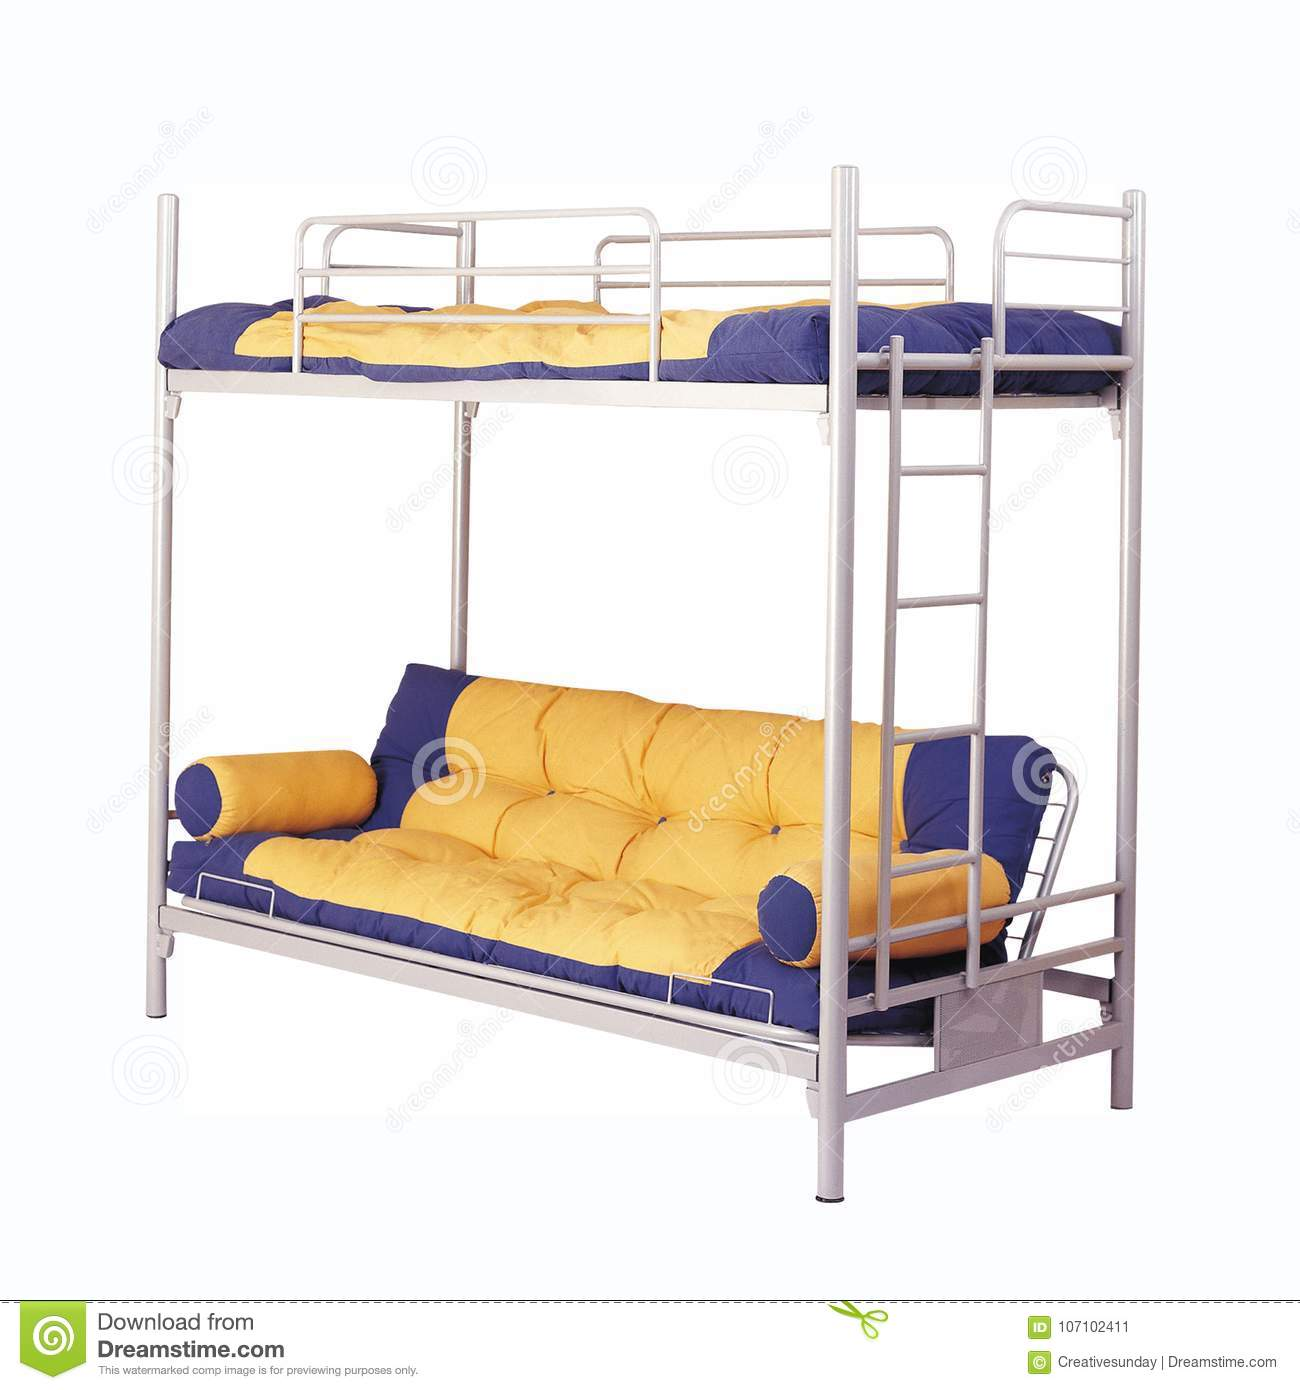 Picture of: Two Stories Bunk Bed Stock Image Image Of Clipping 107102411